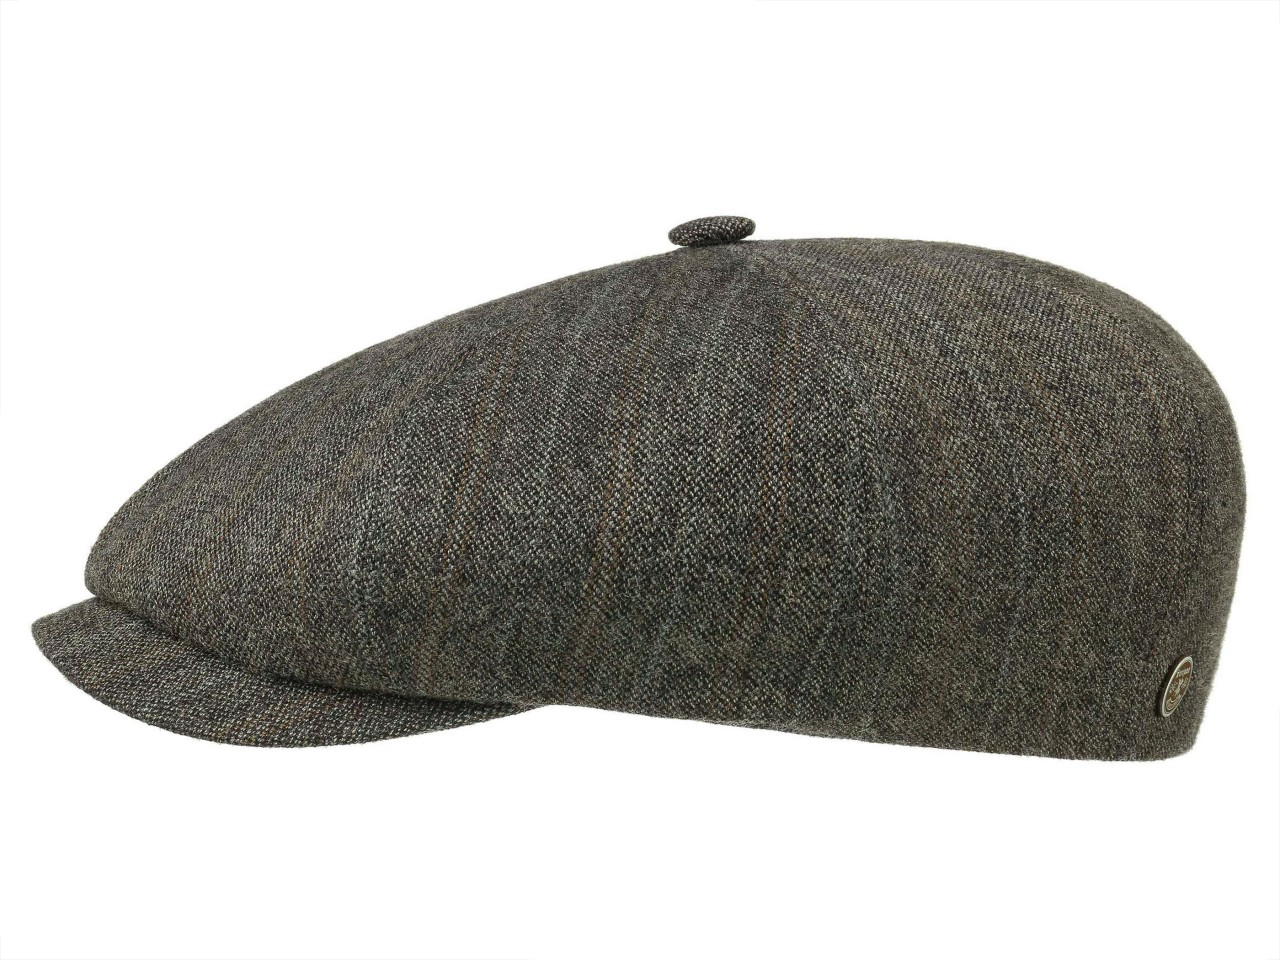 Stetson 8-Panel Cap Linen/Wool Stripes 8 Panel Newsboy Flatcap